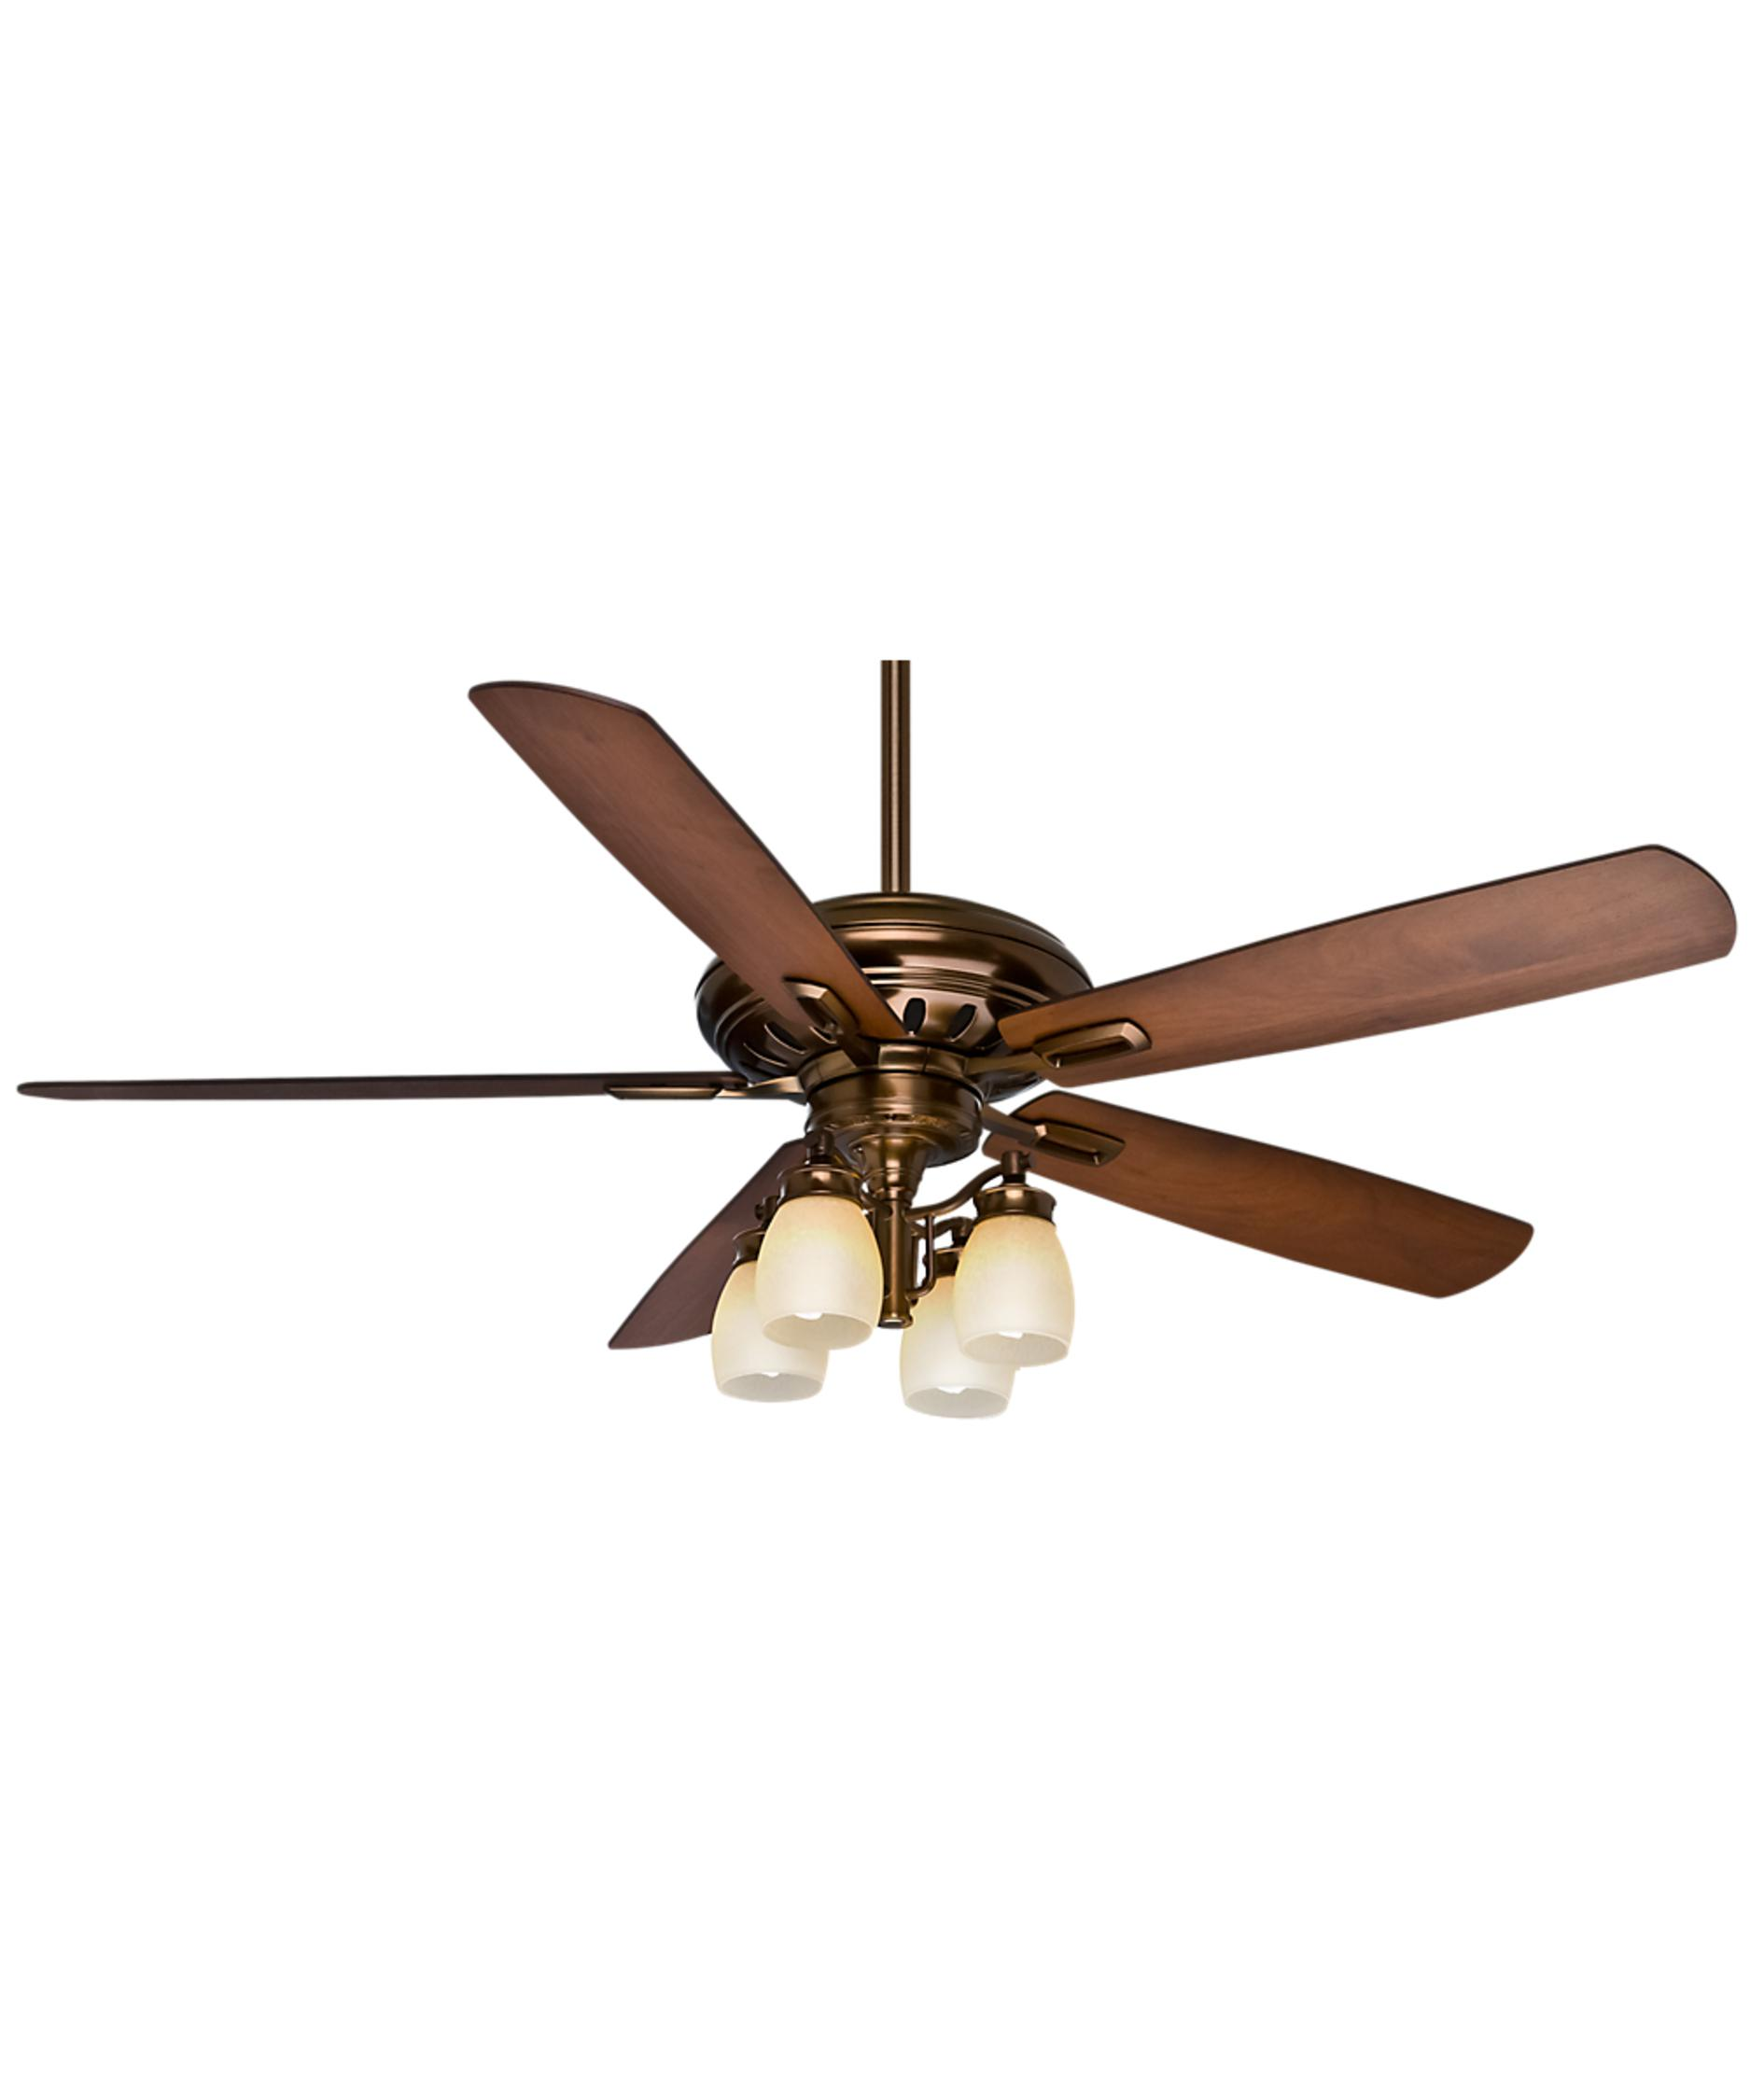 60 Inch Ceiling Fan With Light Kit Capitol Lighting